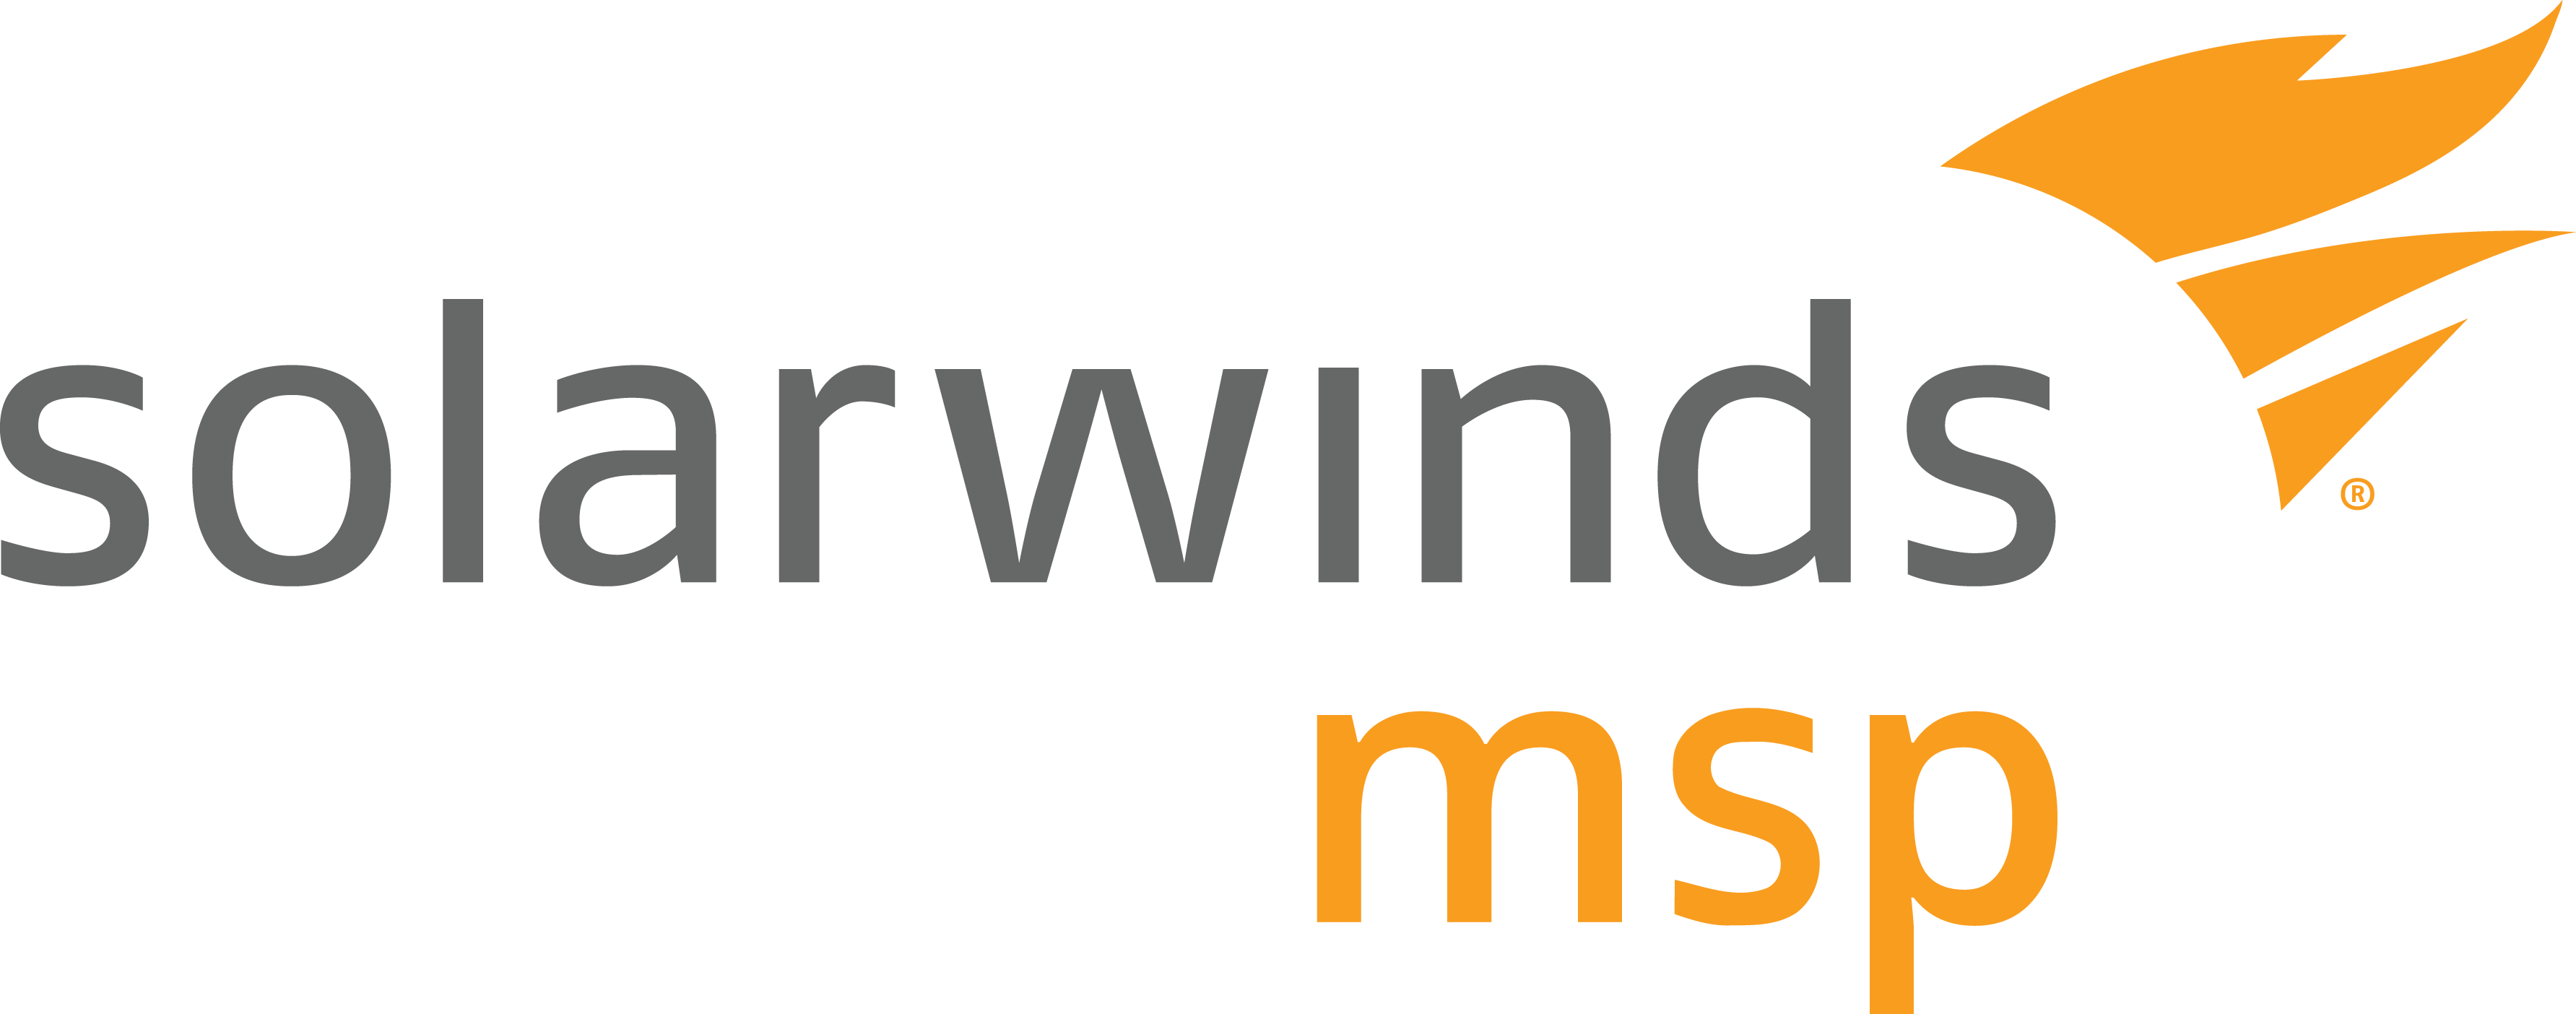 SolarWinds MSP Logo Full Colour